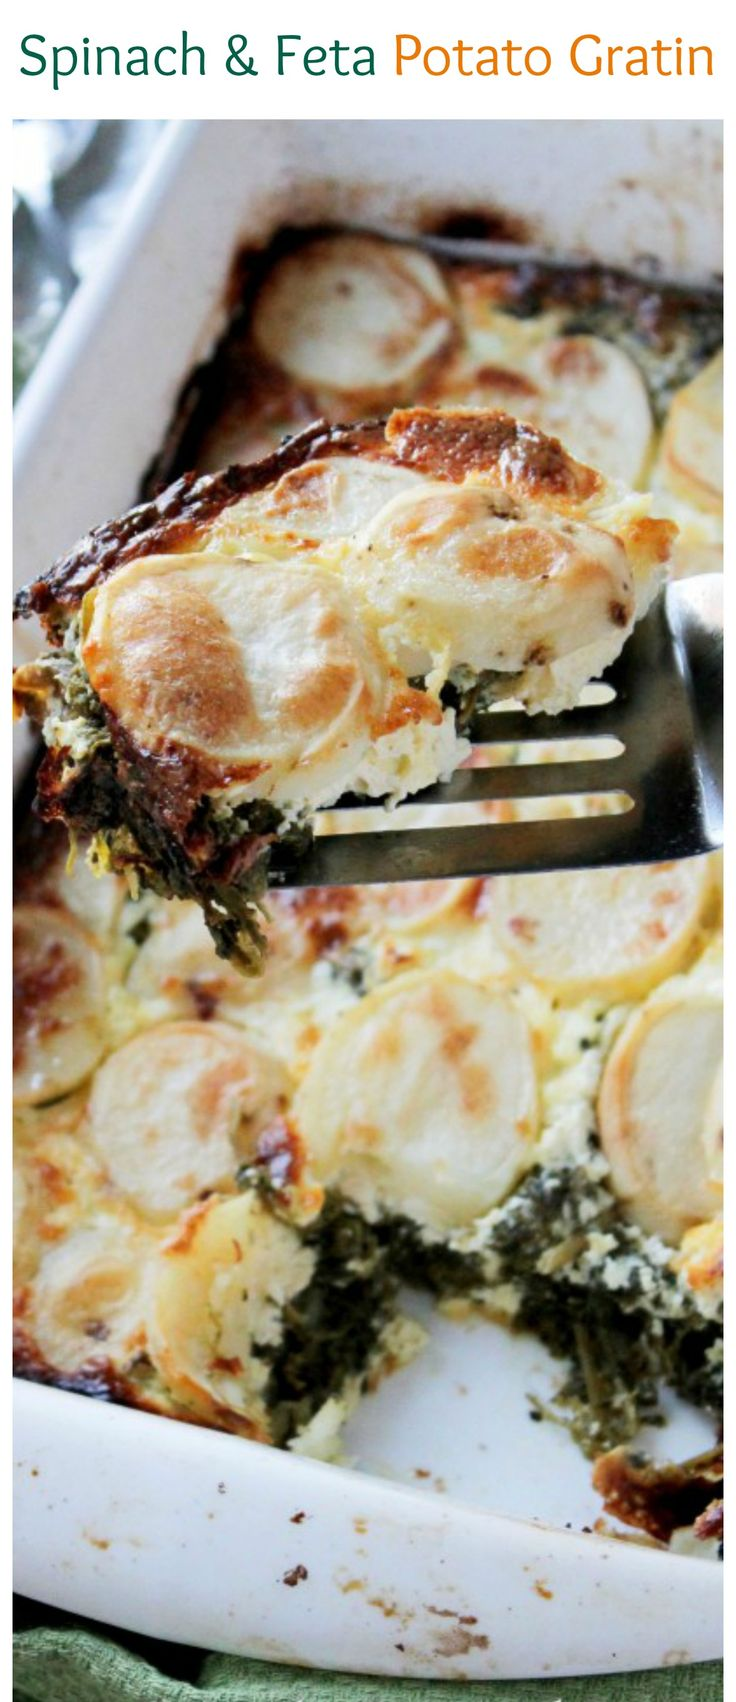 Layers of sliced potatoes filled with a delicious mixture of spinach and feta cheese. Our favorite potato gratin dinner!